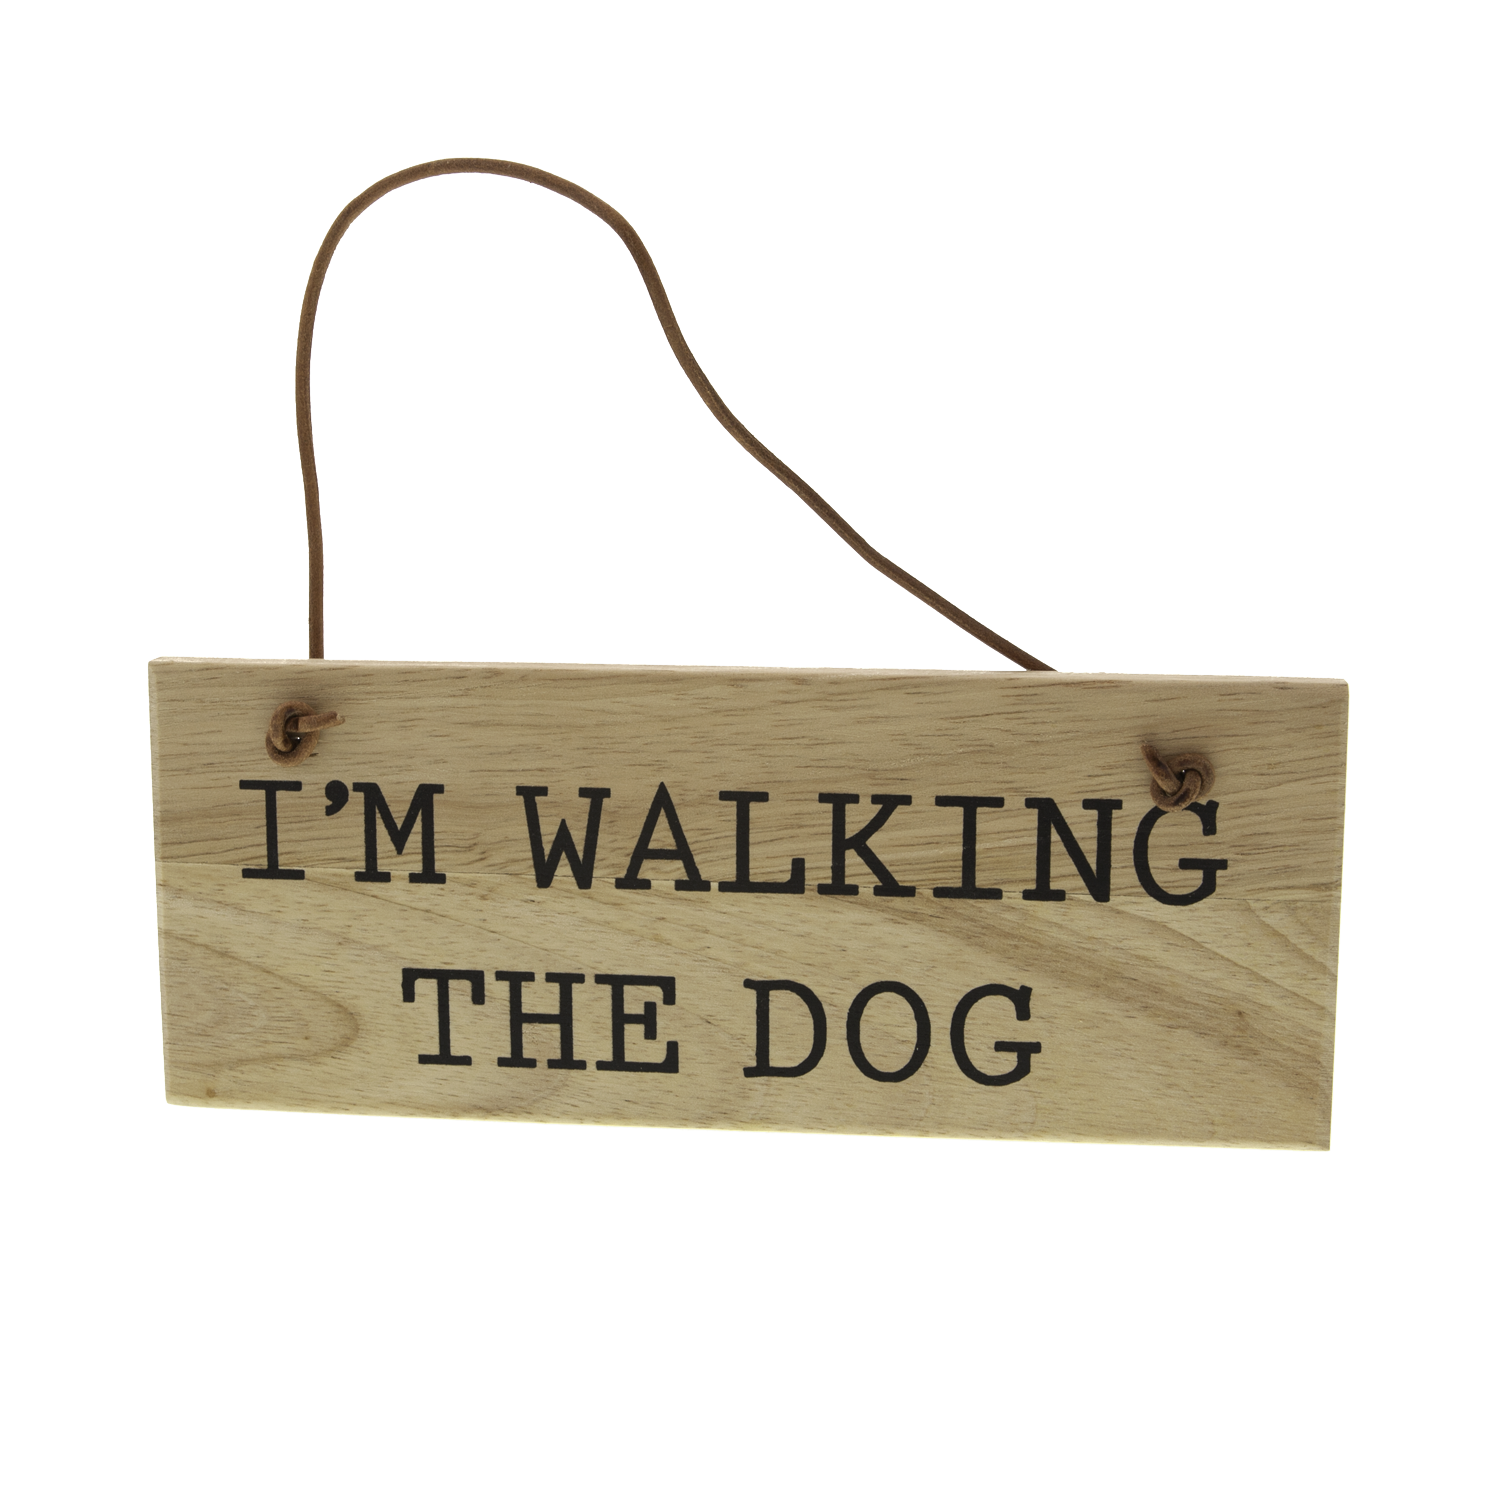 DogKrazy.Gifts - I'm Walking The Dog Wooden Sign. Tell your family and friends where you and your four legged friend are at.